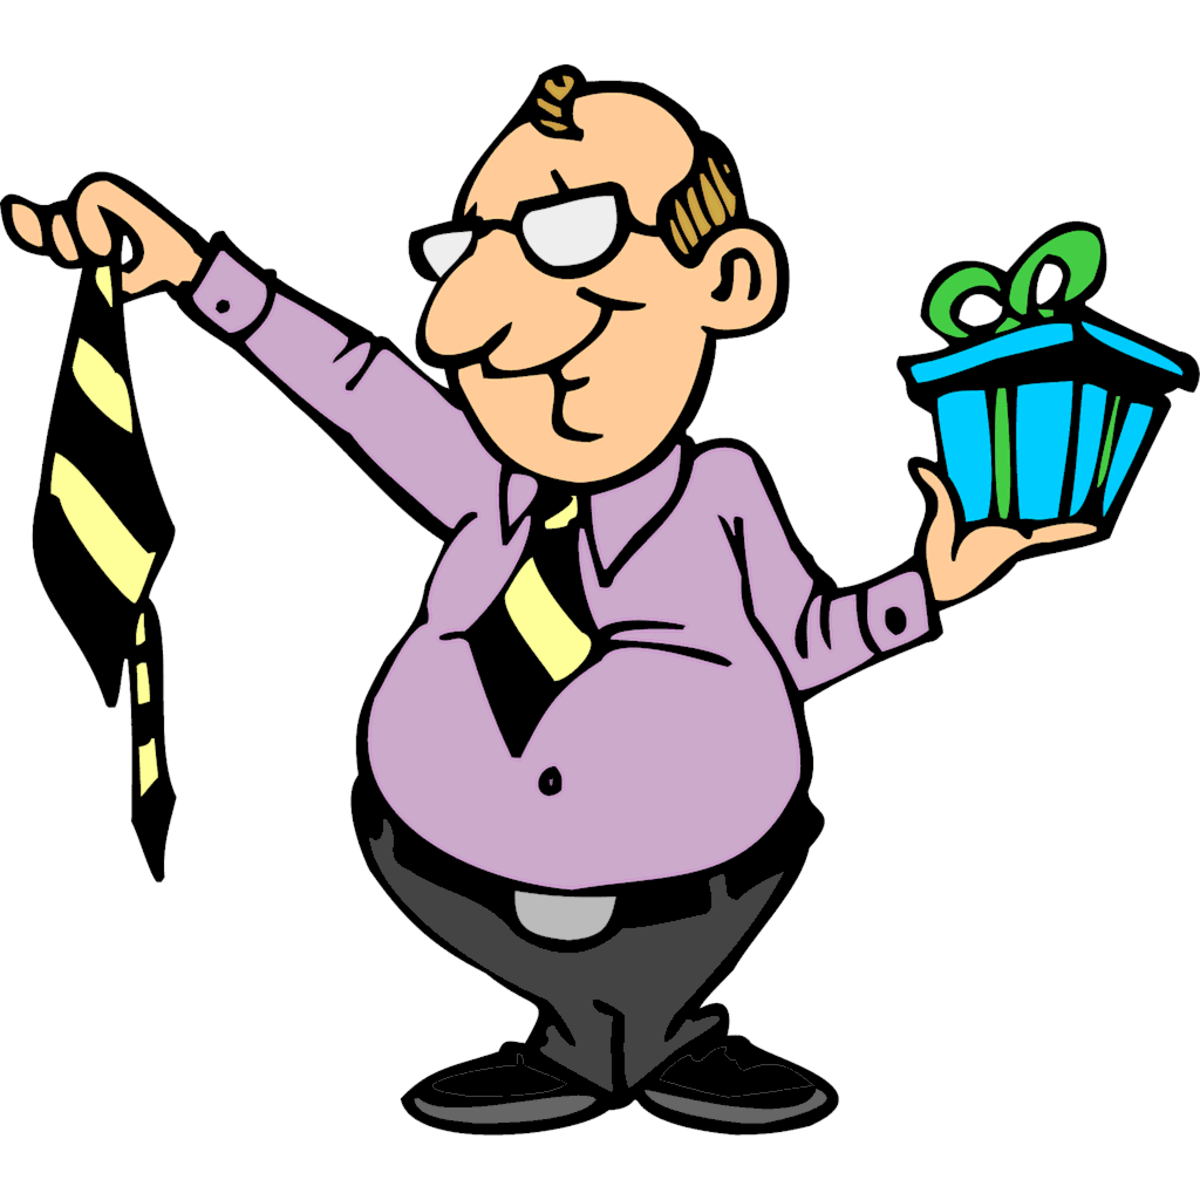 Cartoon Image of Dad Getting Tie for Father's Day